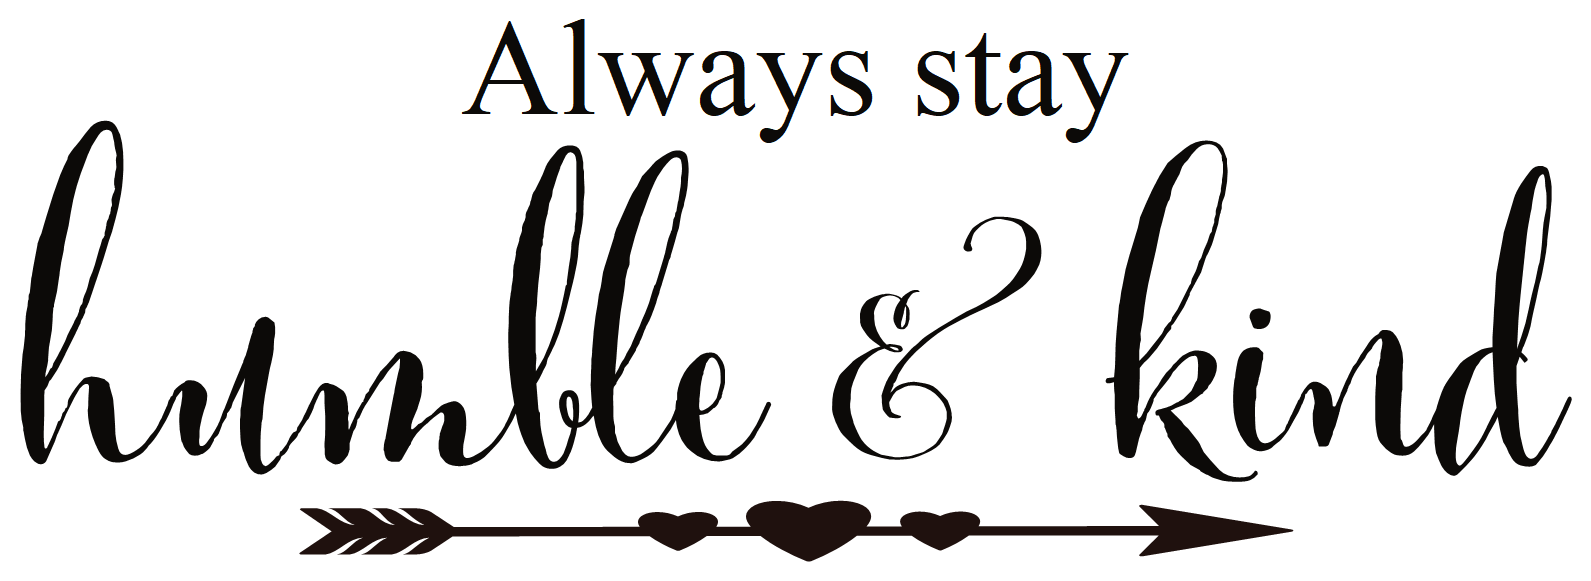 Always Stay Humble And Kind Religious Motivational Classroom School